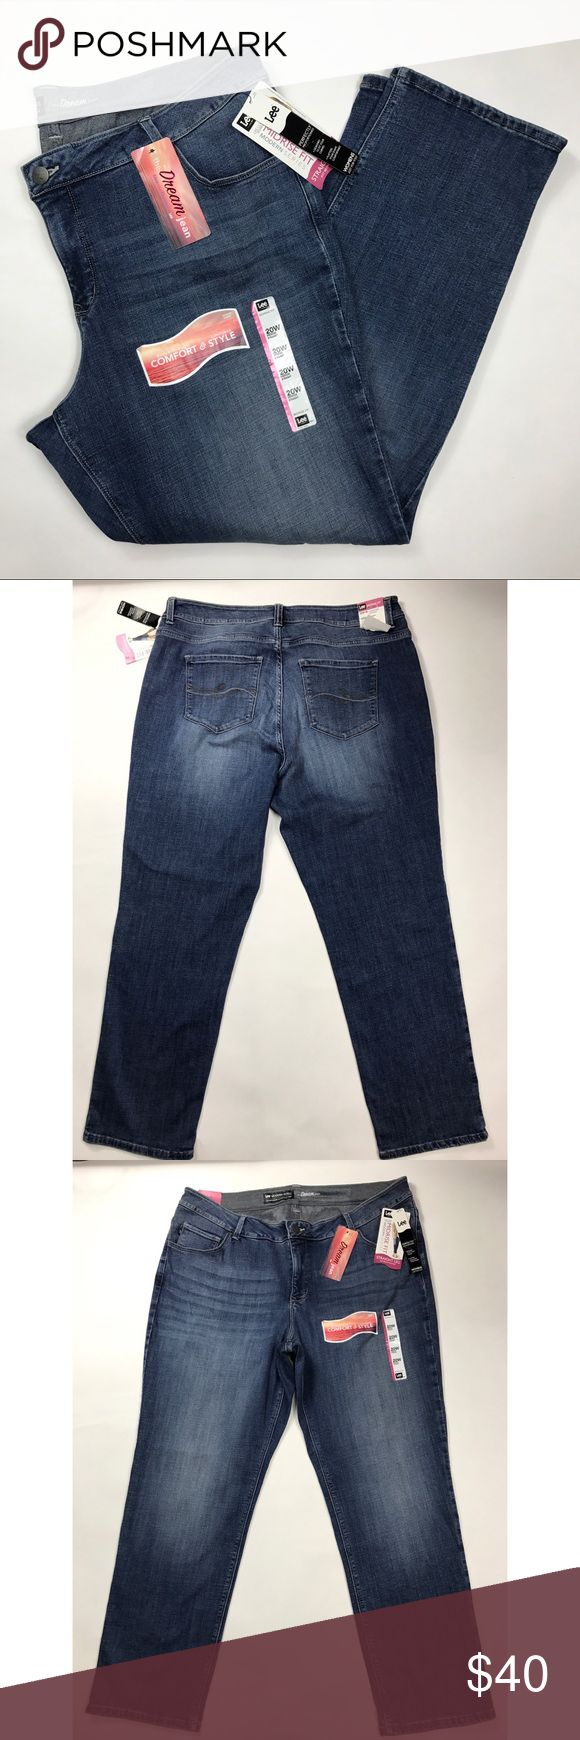 NWT LEE JEANS Straight Leg Jeans ~ Plus sz 20W M NWT LEE JEANS Mid Rise Fit Dream Straight Leg Jeans ~ Plus sz 20W M  Bin 102 Actual measurements:   waist:  40 inches unstretched   rise: 11 inches   inseam: 30.5 inches  Check out my other items! Lee Jeans Straight Leg